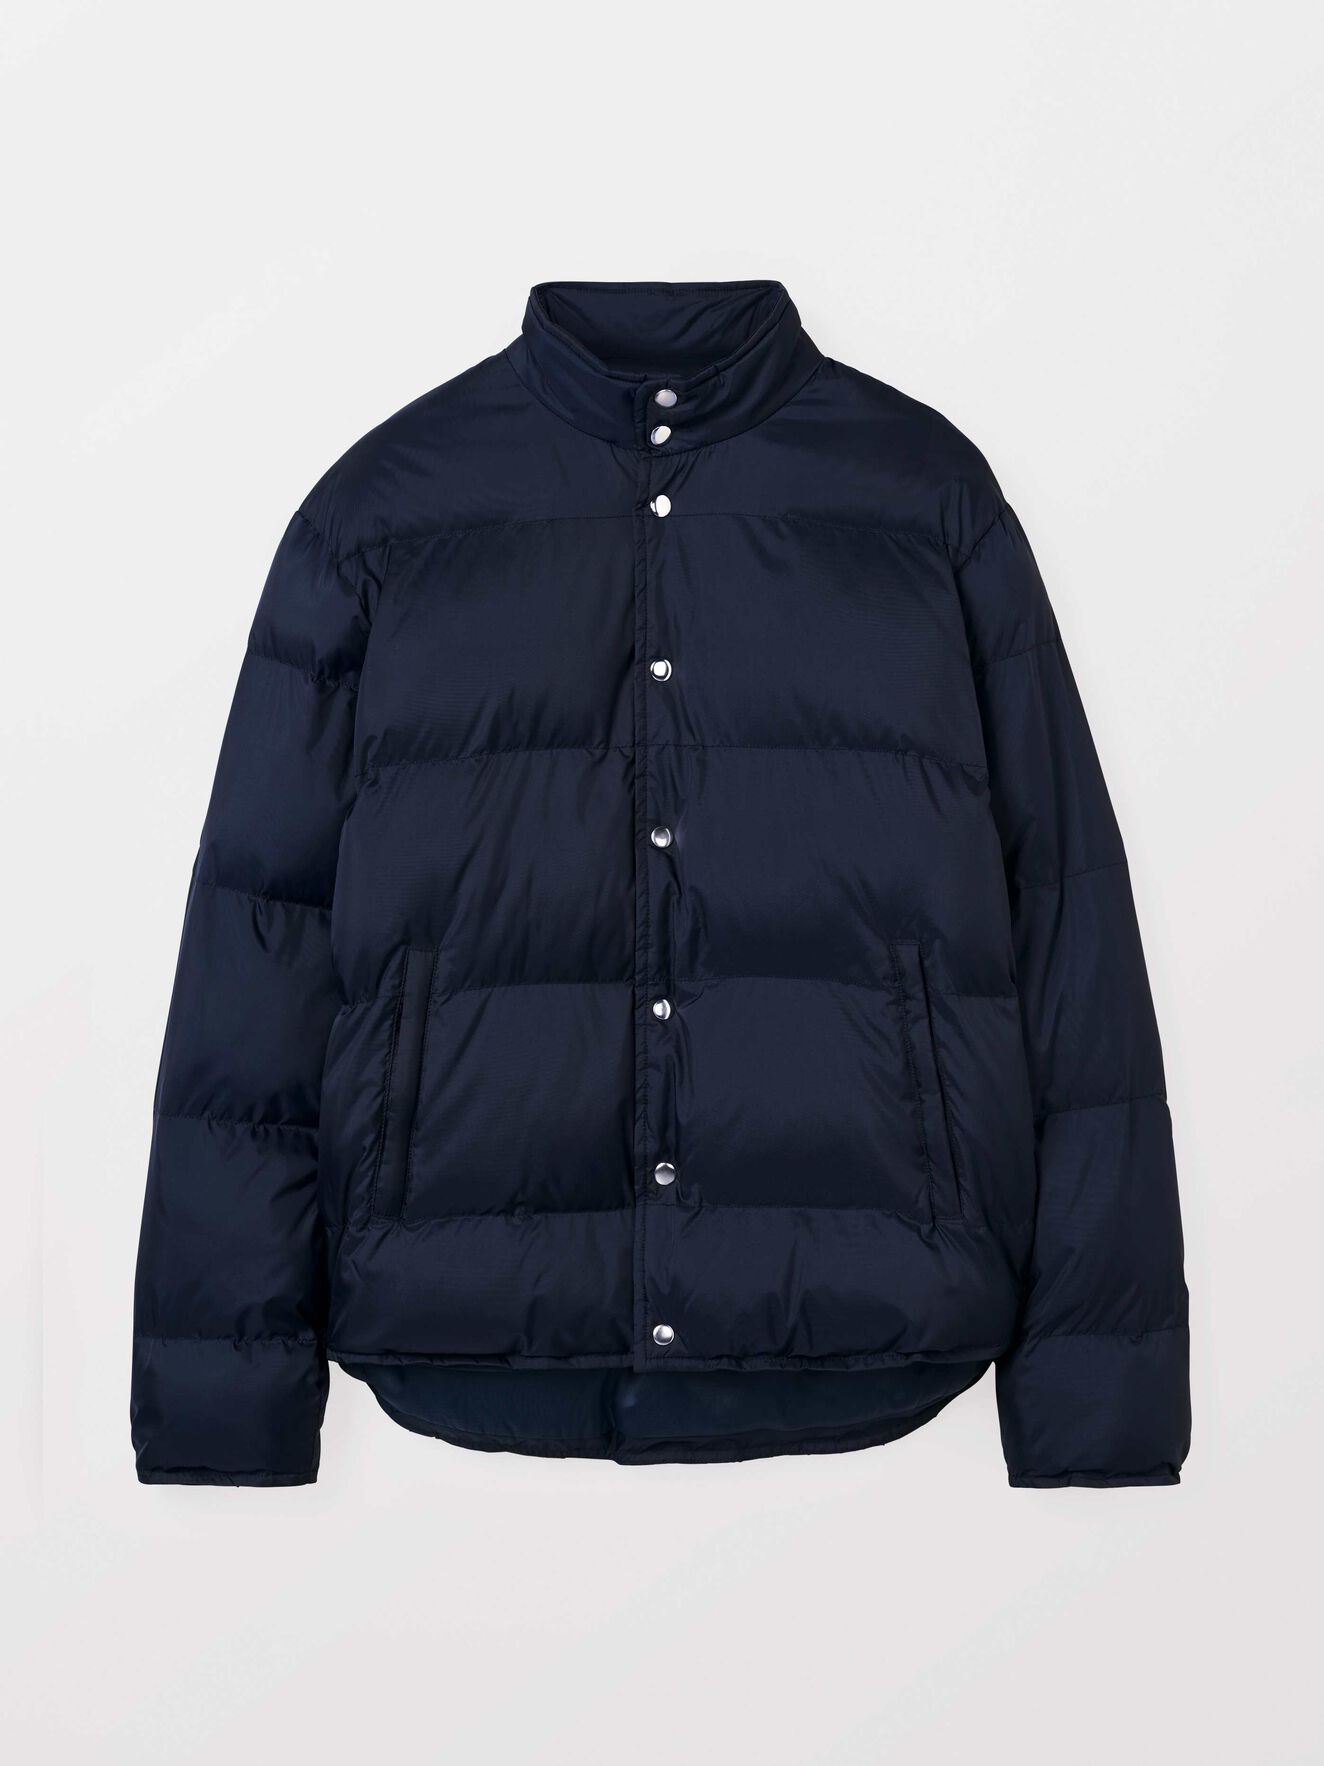 Noley Jacket in Maritime Blue from Tiger of Sweden